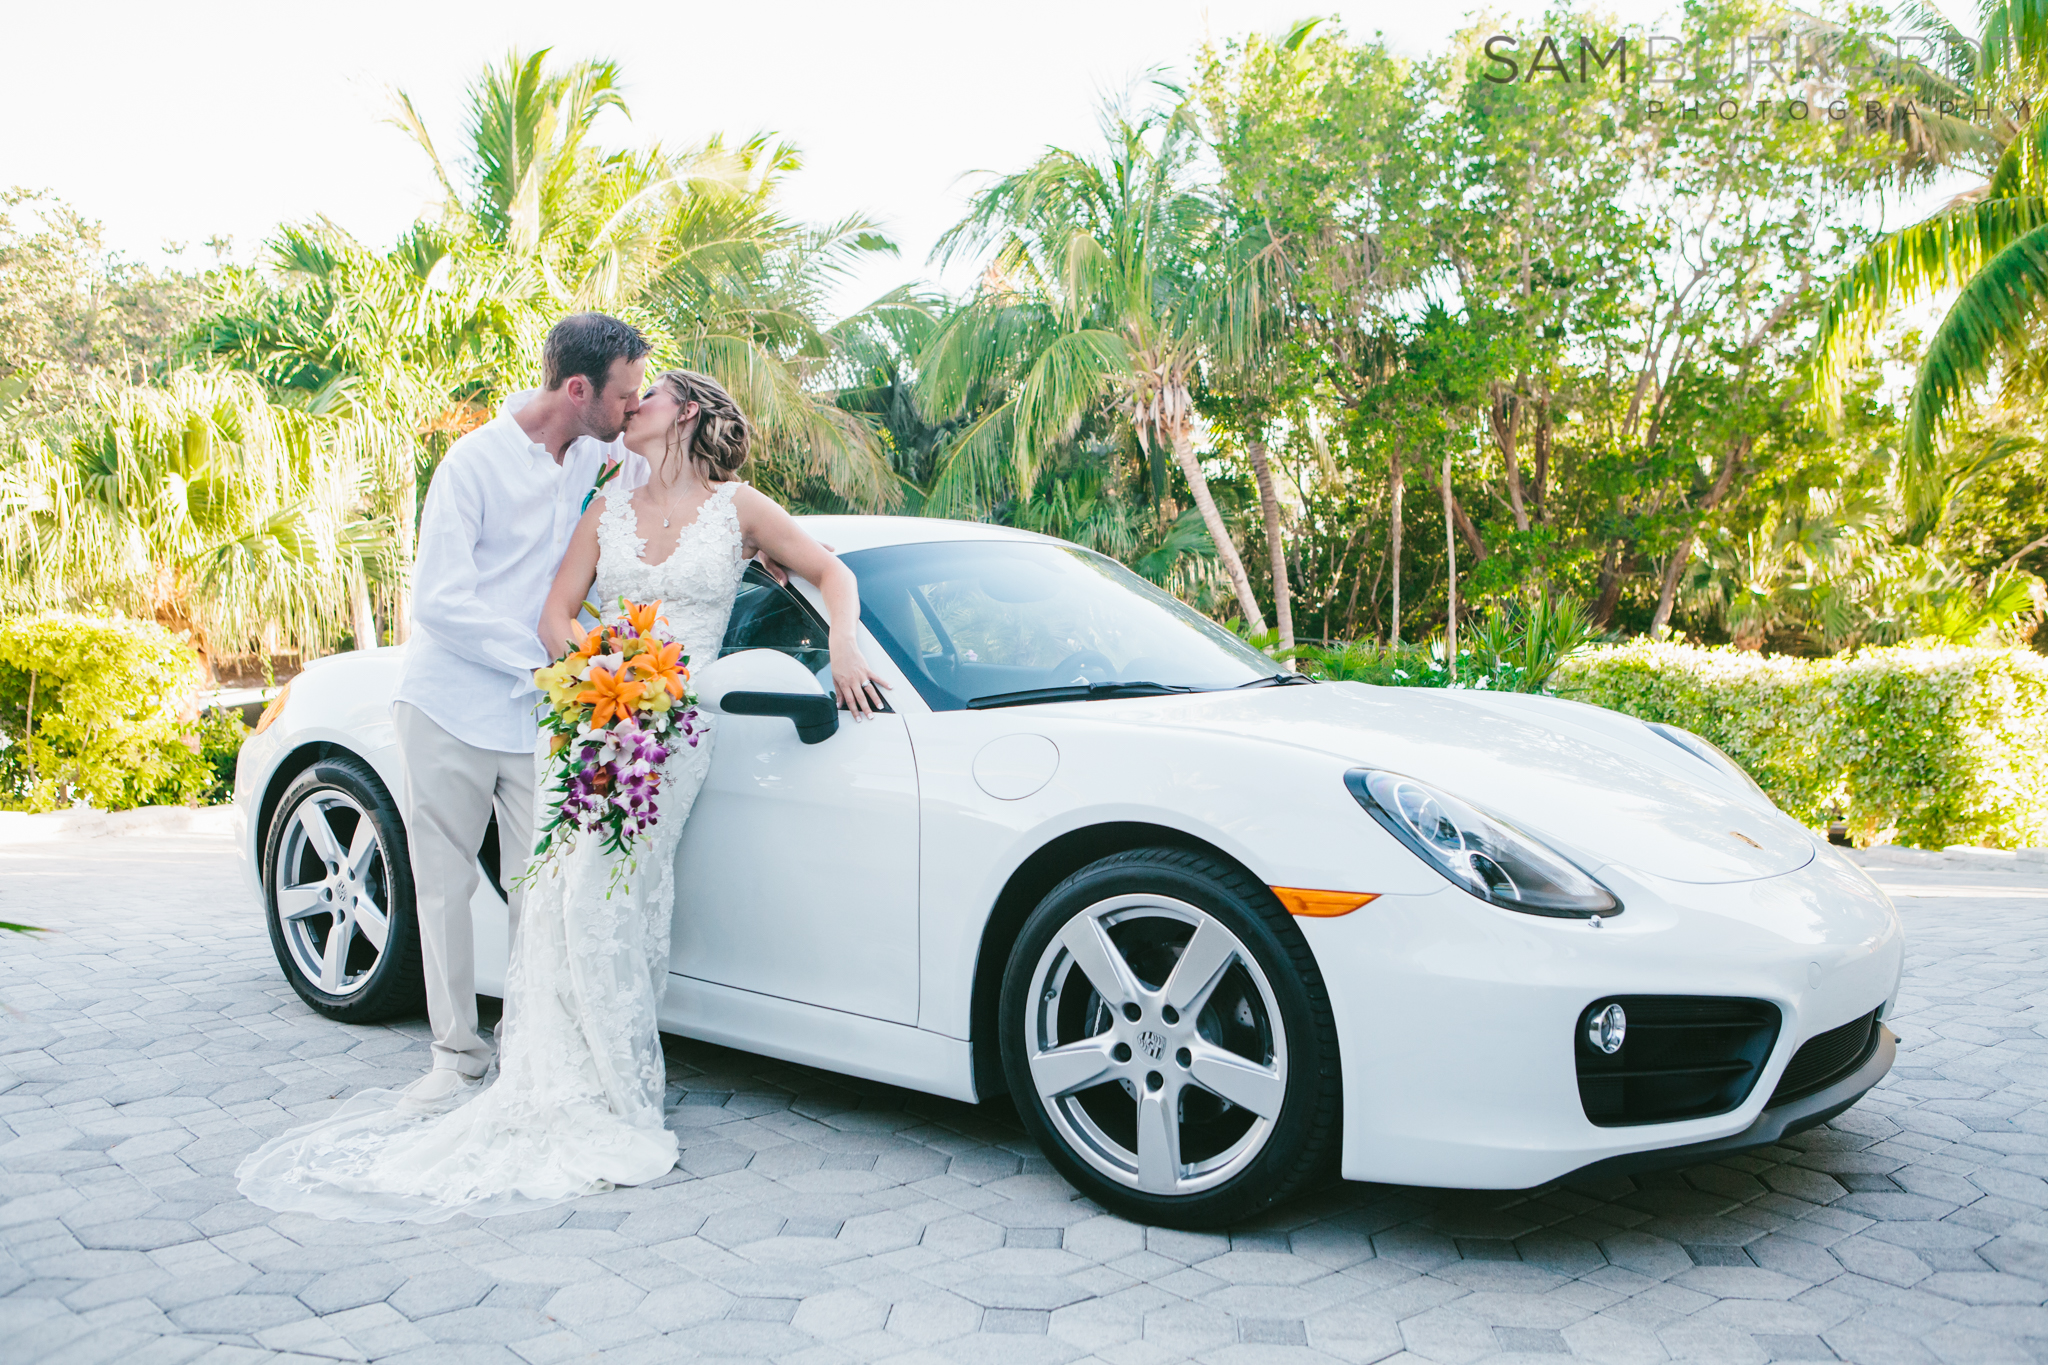 samburkardt_key_west_wedding_marathon_florida_summer_beach_ocean_front_0043.jpg